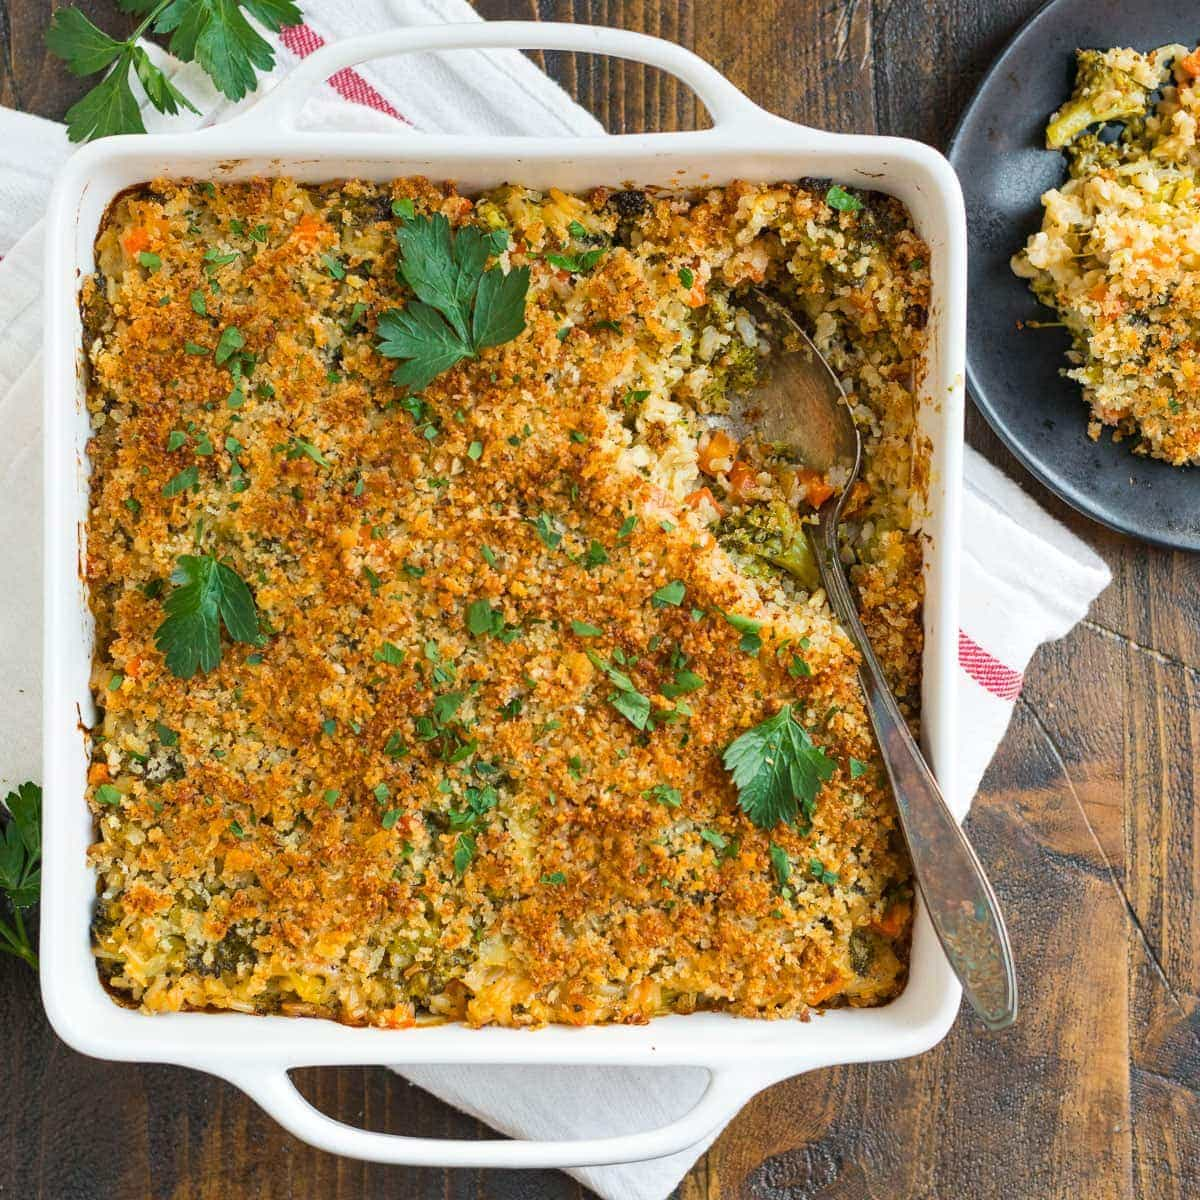 Easy broccoli rice casserole with cheese and breadcrumb topping